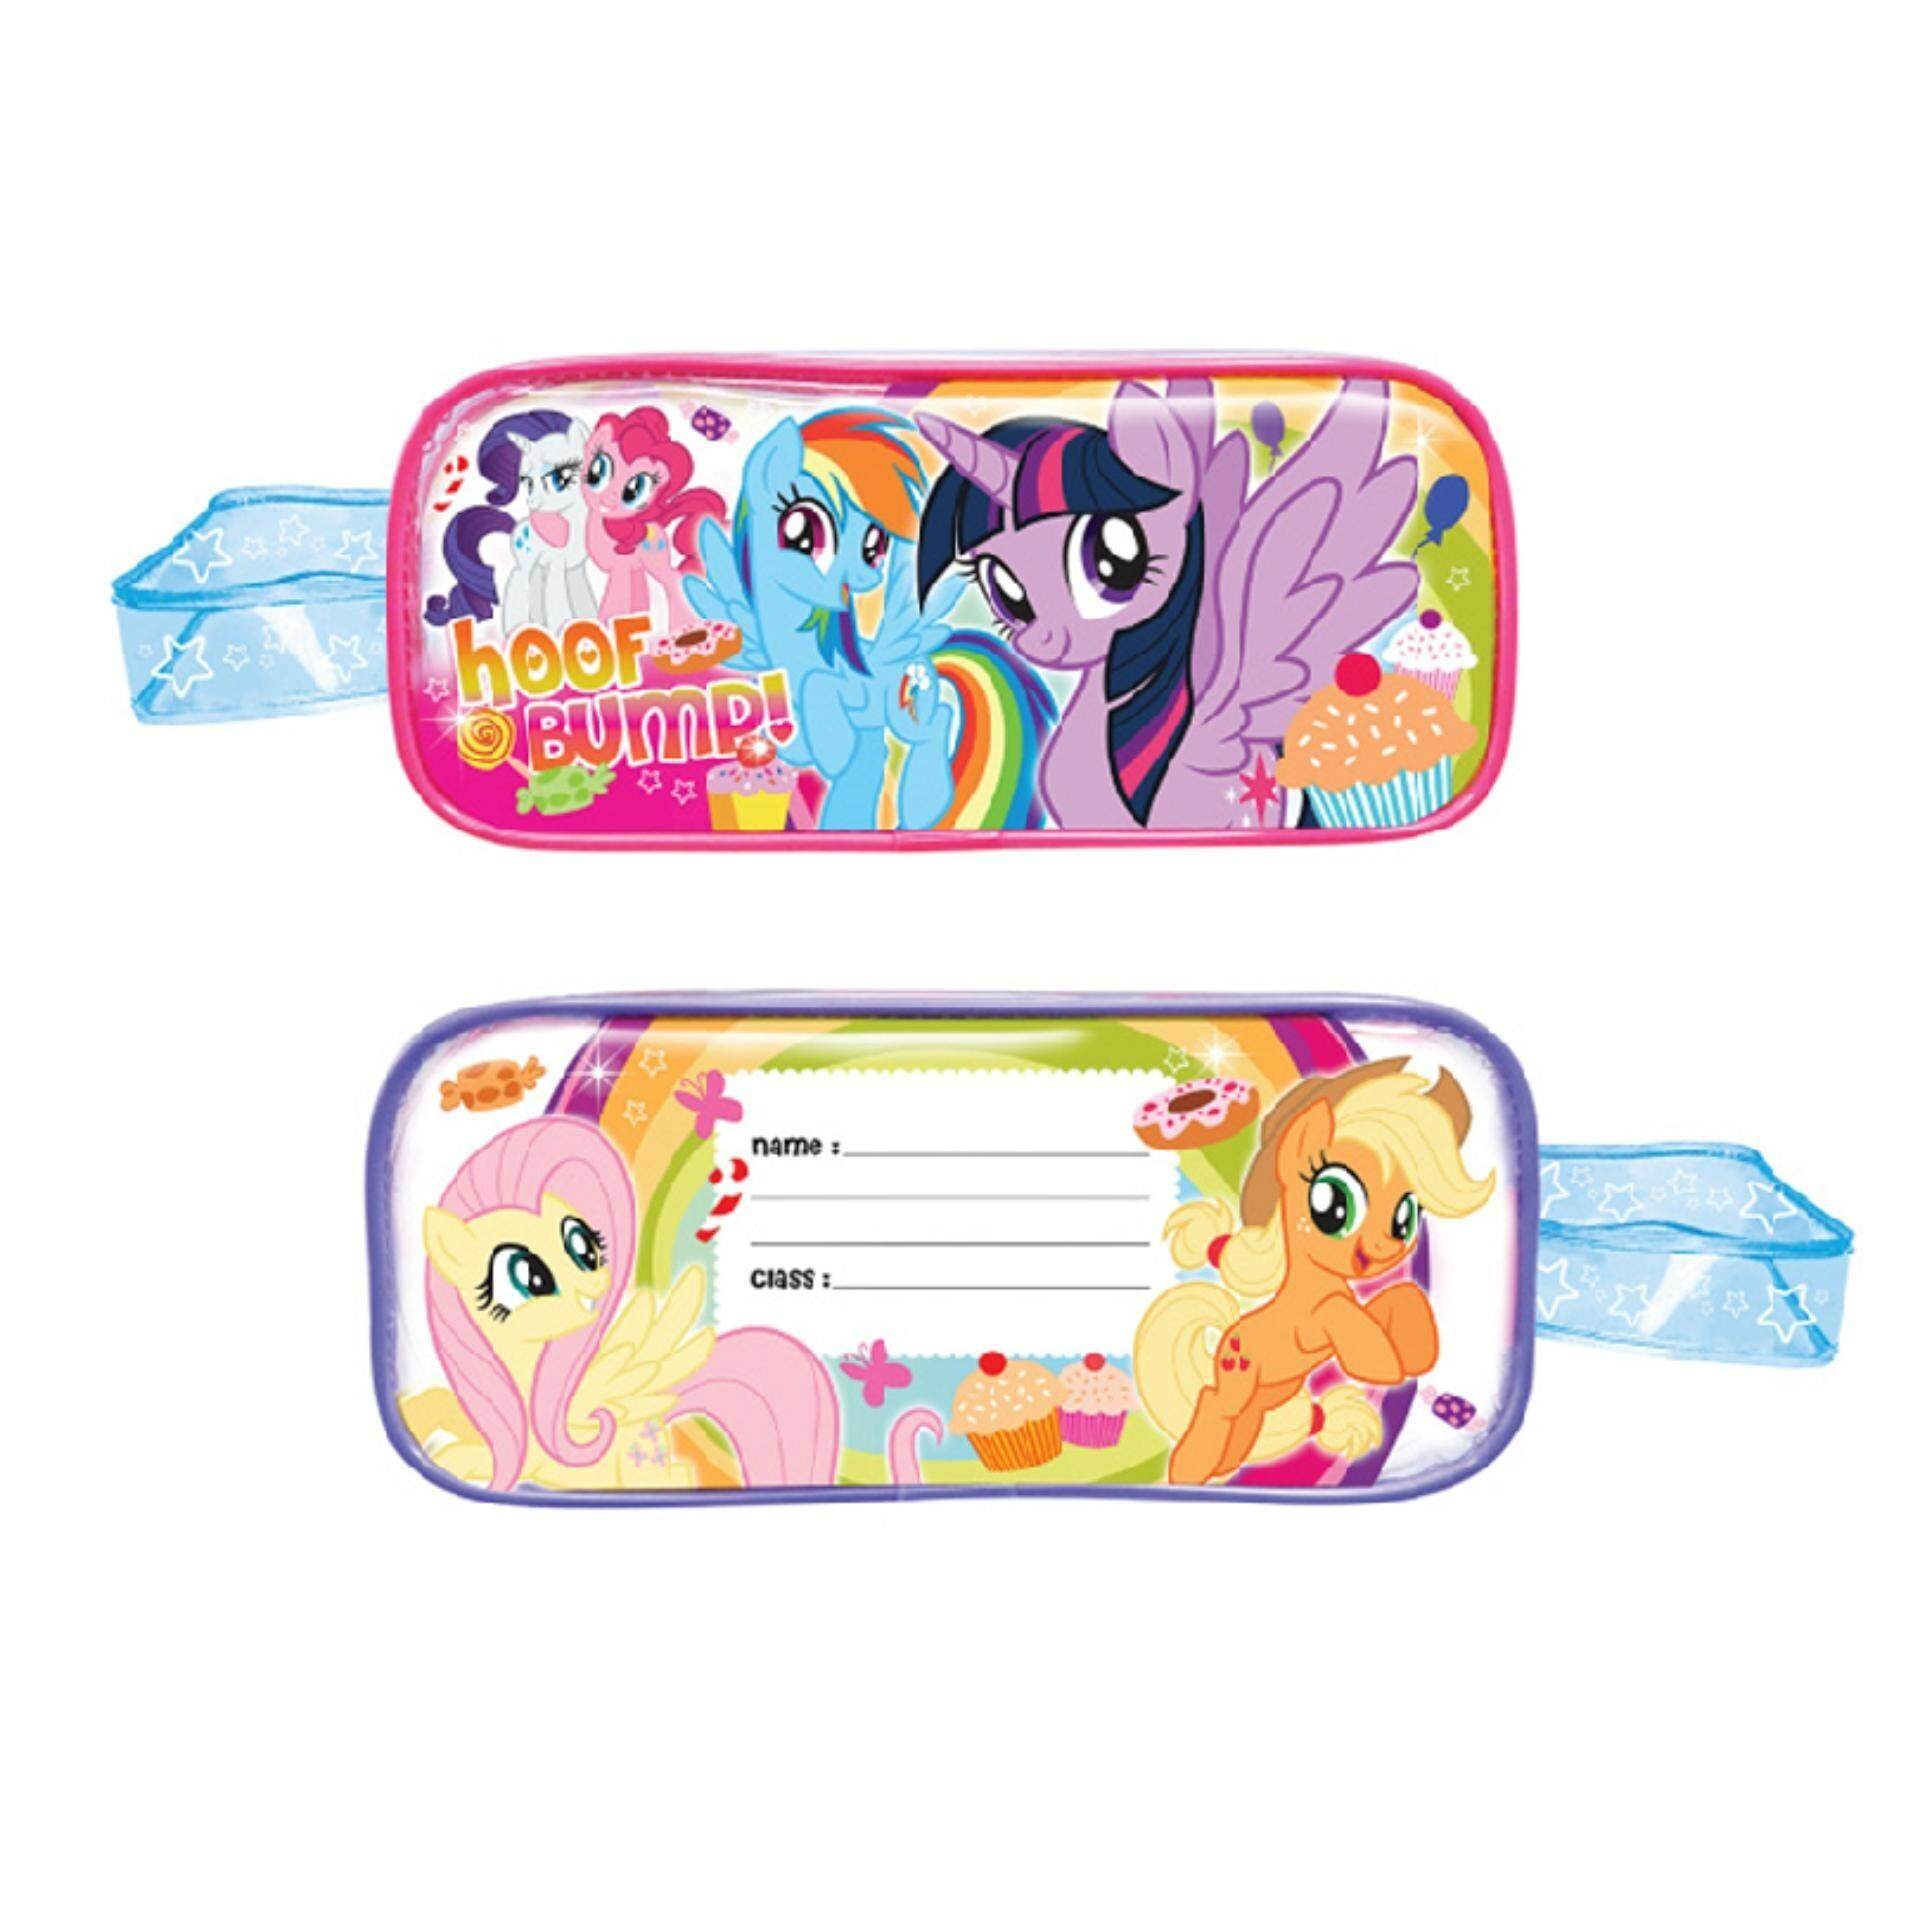 My Little Pony Primary School Kids Children School Bag Backpack, 650ML BPA  Free Tritian Bottle With Straw, Square Pencil Bag, Pencil, Eraser, Ruler &